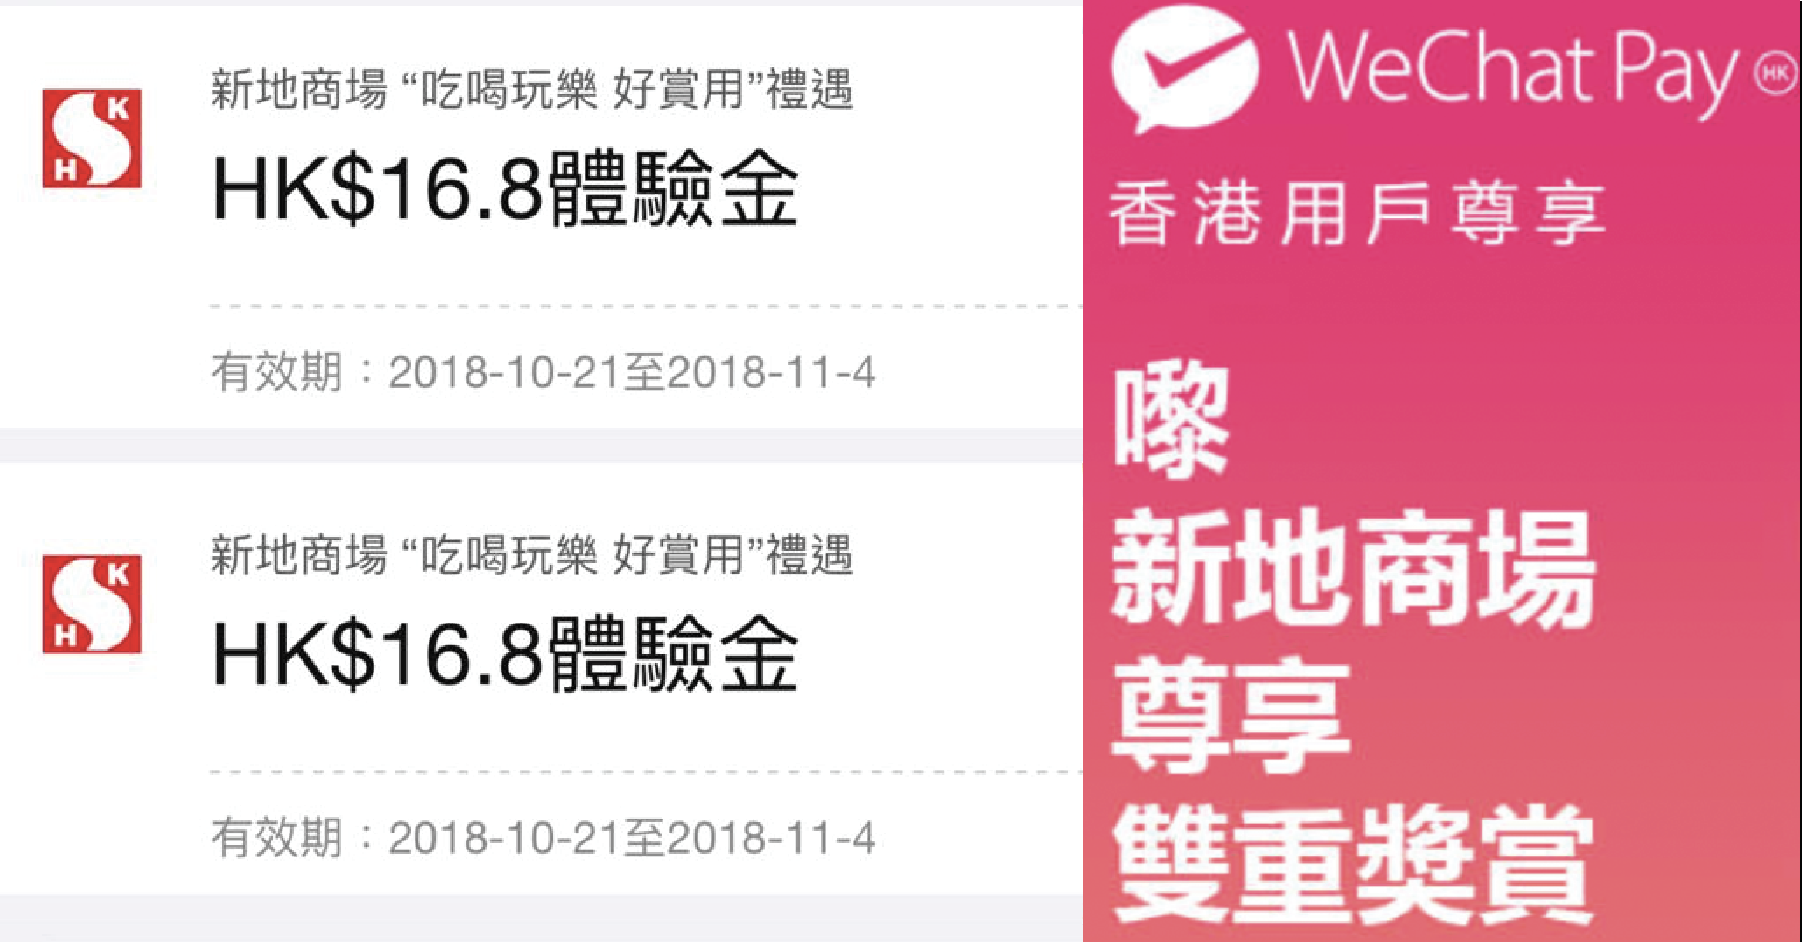 Wechat Pay Coupon!新鴻基商場消費$16.8即減$16.8!